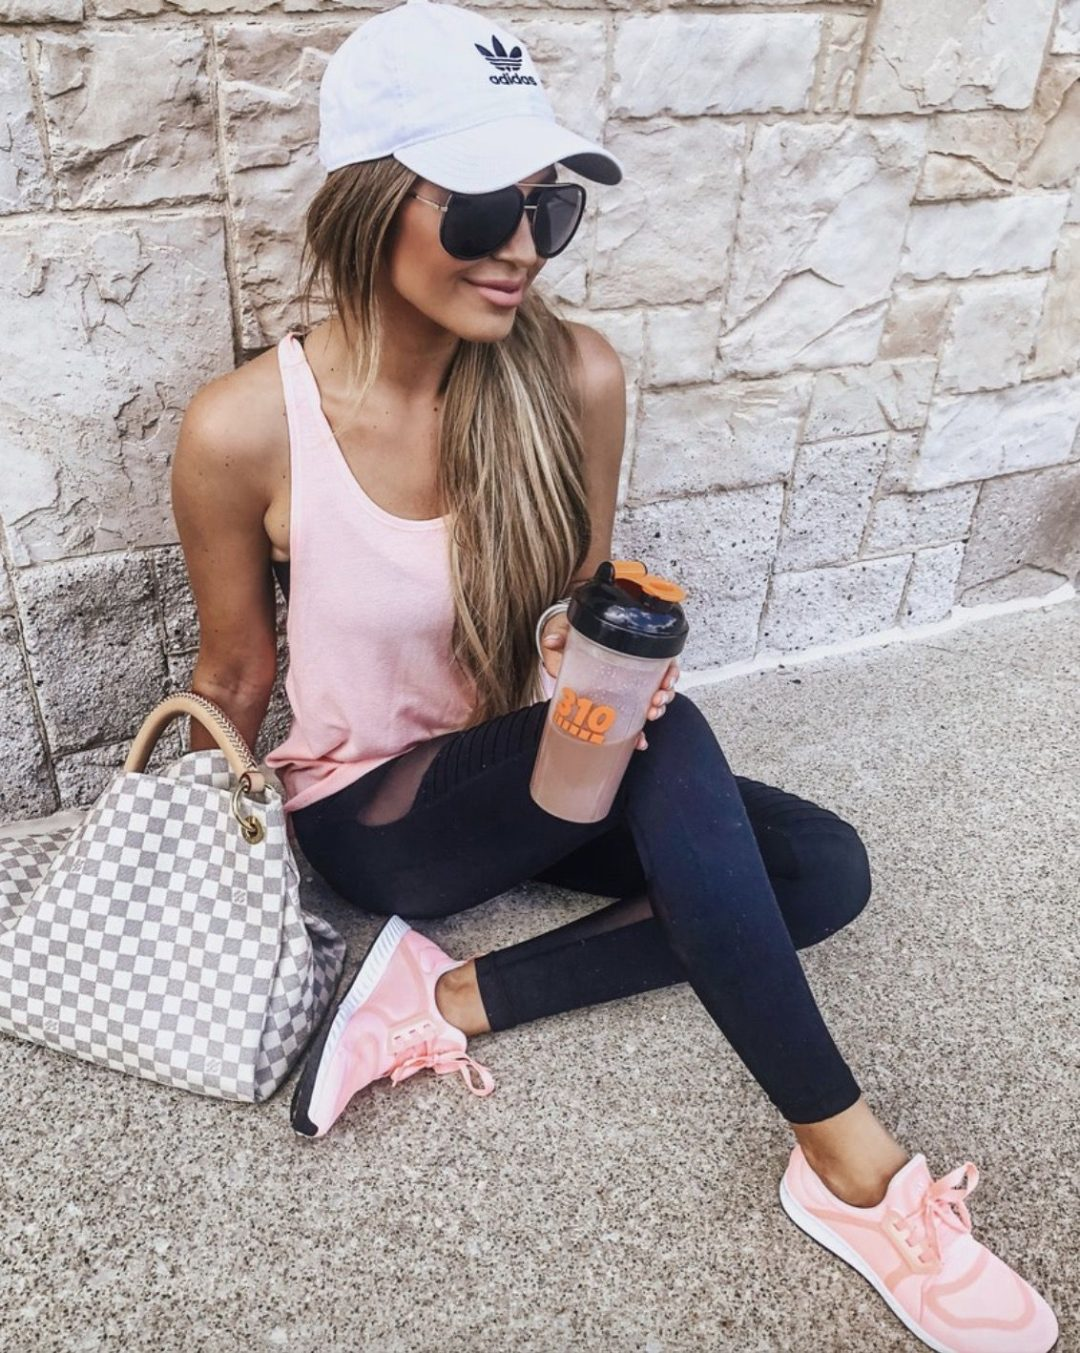 11+ Surprisingly Cute Sporty Outfits To Try: All athleisure lovers ahoy! Check out these sporty chic outfits, casual outfits and stylish gym outfits to get inspired for the new season. | White Adidas cap, pink sneakers, pink top, Louis Vuitton Neverfull - perfect for airport outfits. Image ©HollieWdwrd #sportyoutfits #casualoutfits #athleisure #airportoutfits